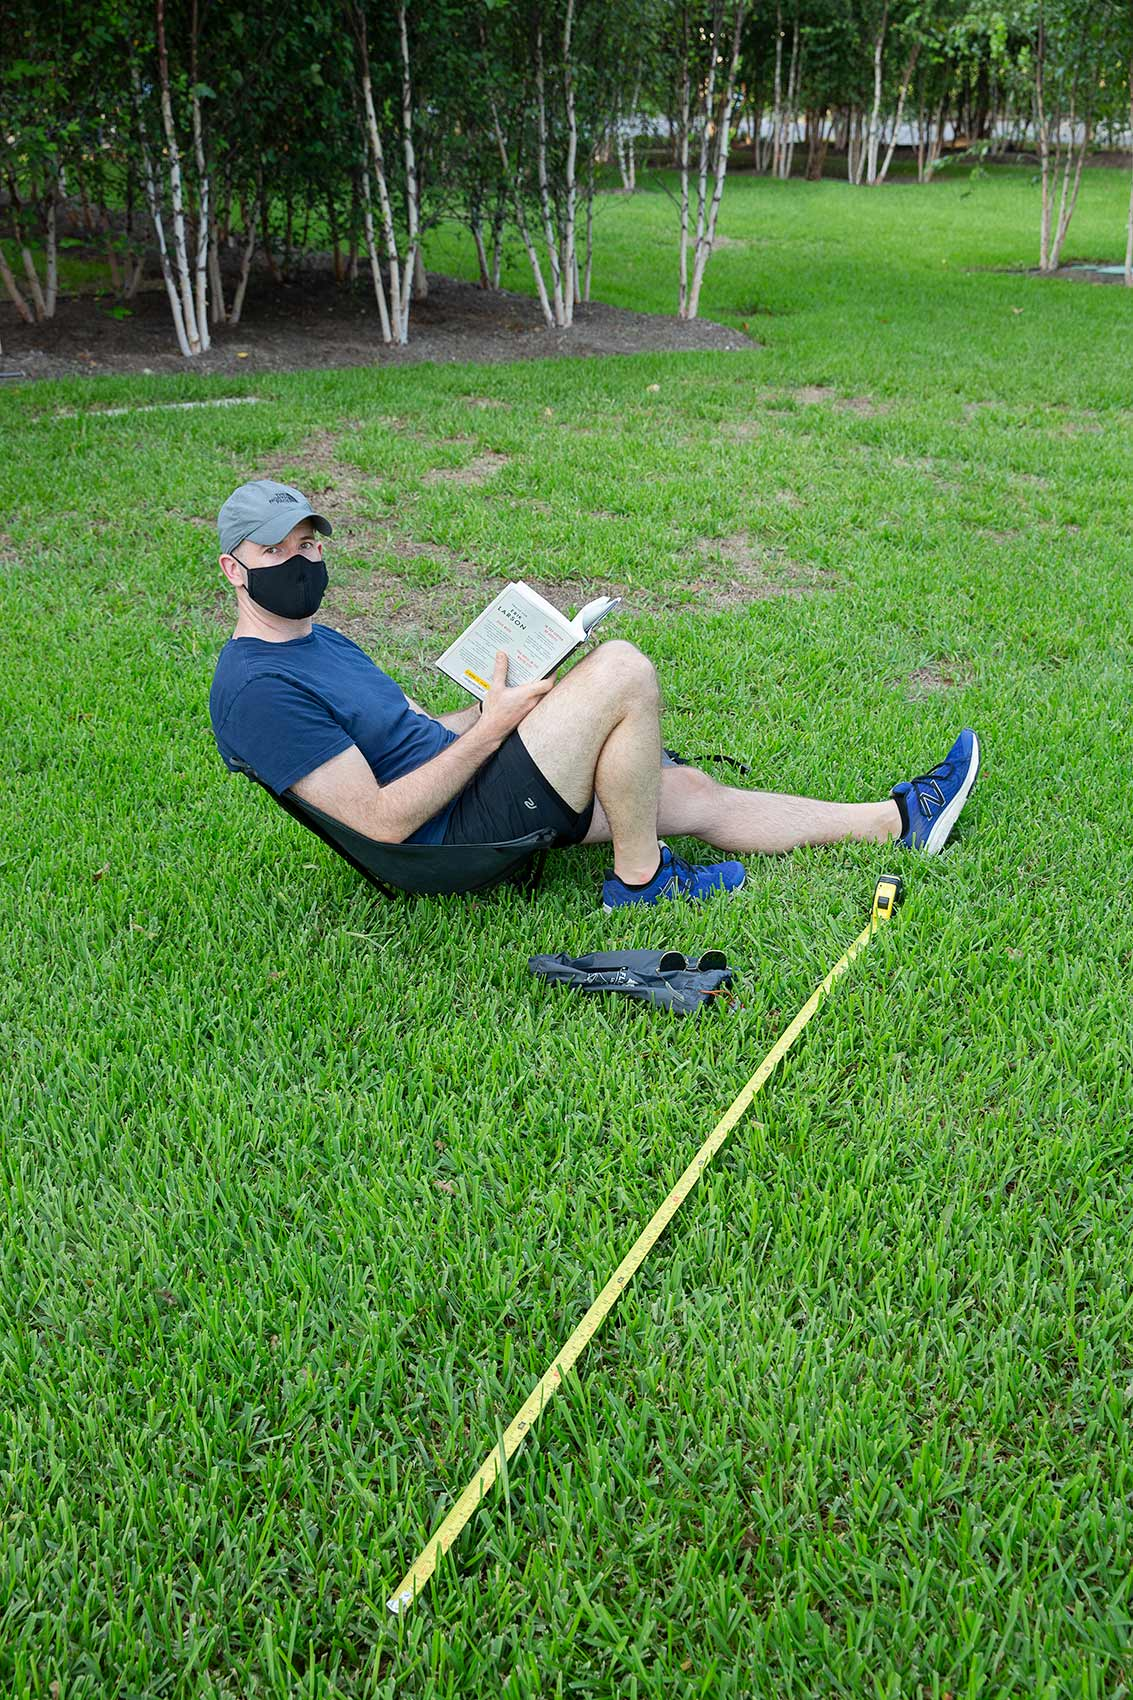 A man wearing a mask reads a book on a grassy lawn with a long tape measure as a symbol of Covic-19 social distance